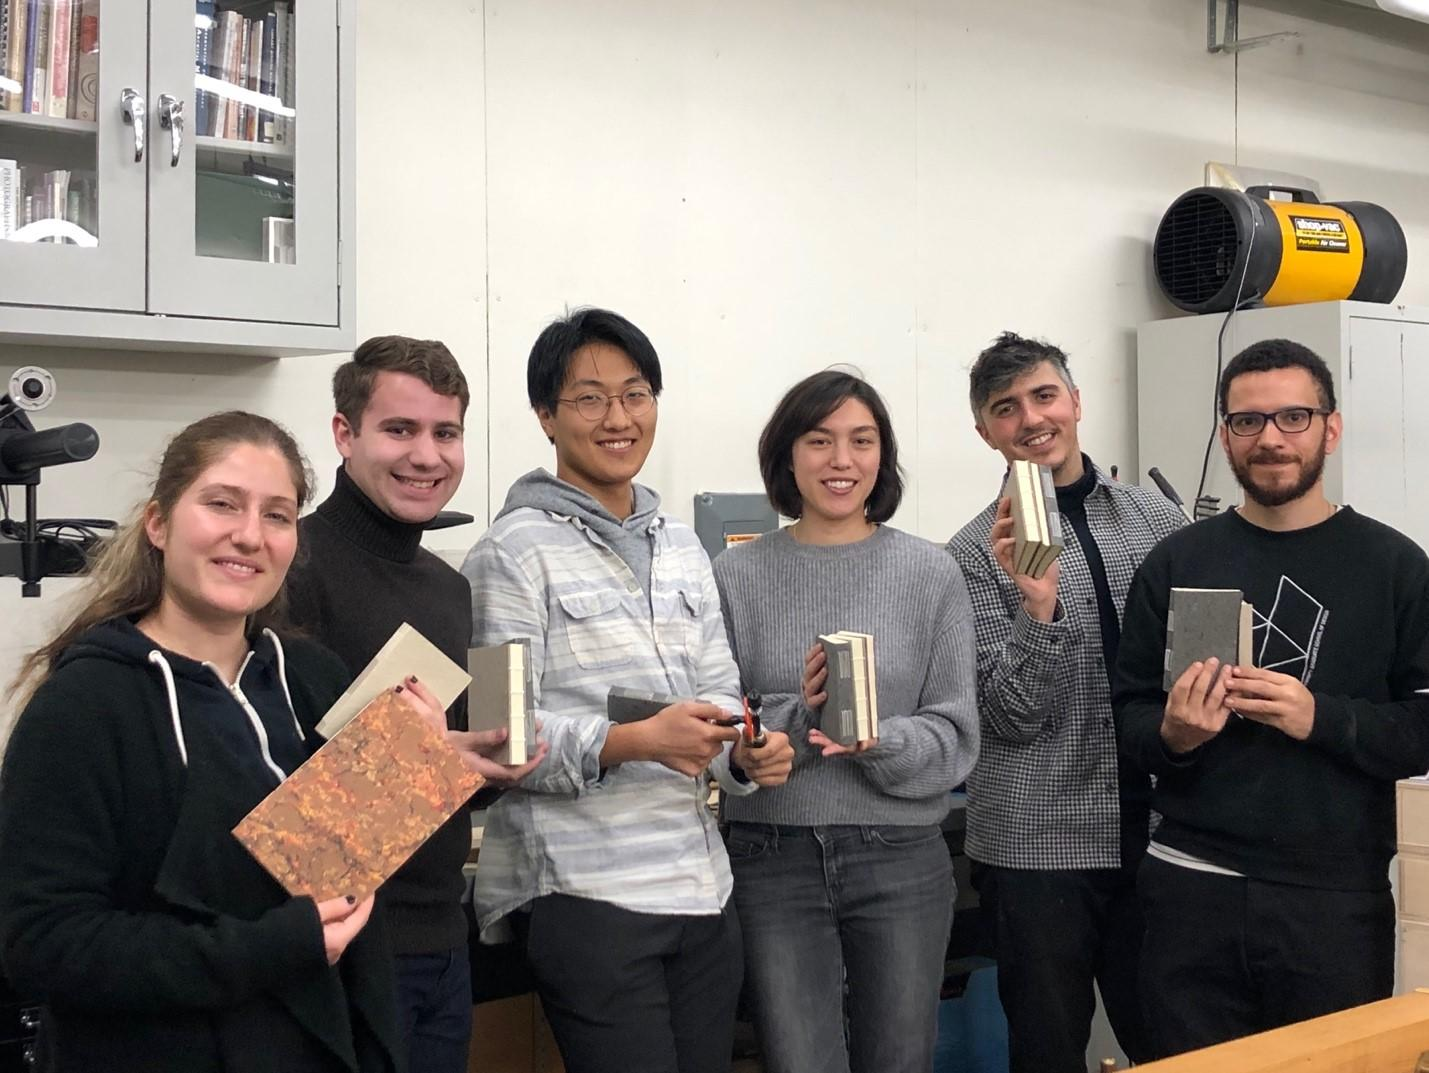 Students holding the books that they made in the workshop.